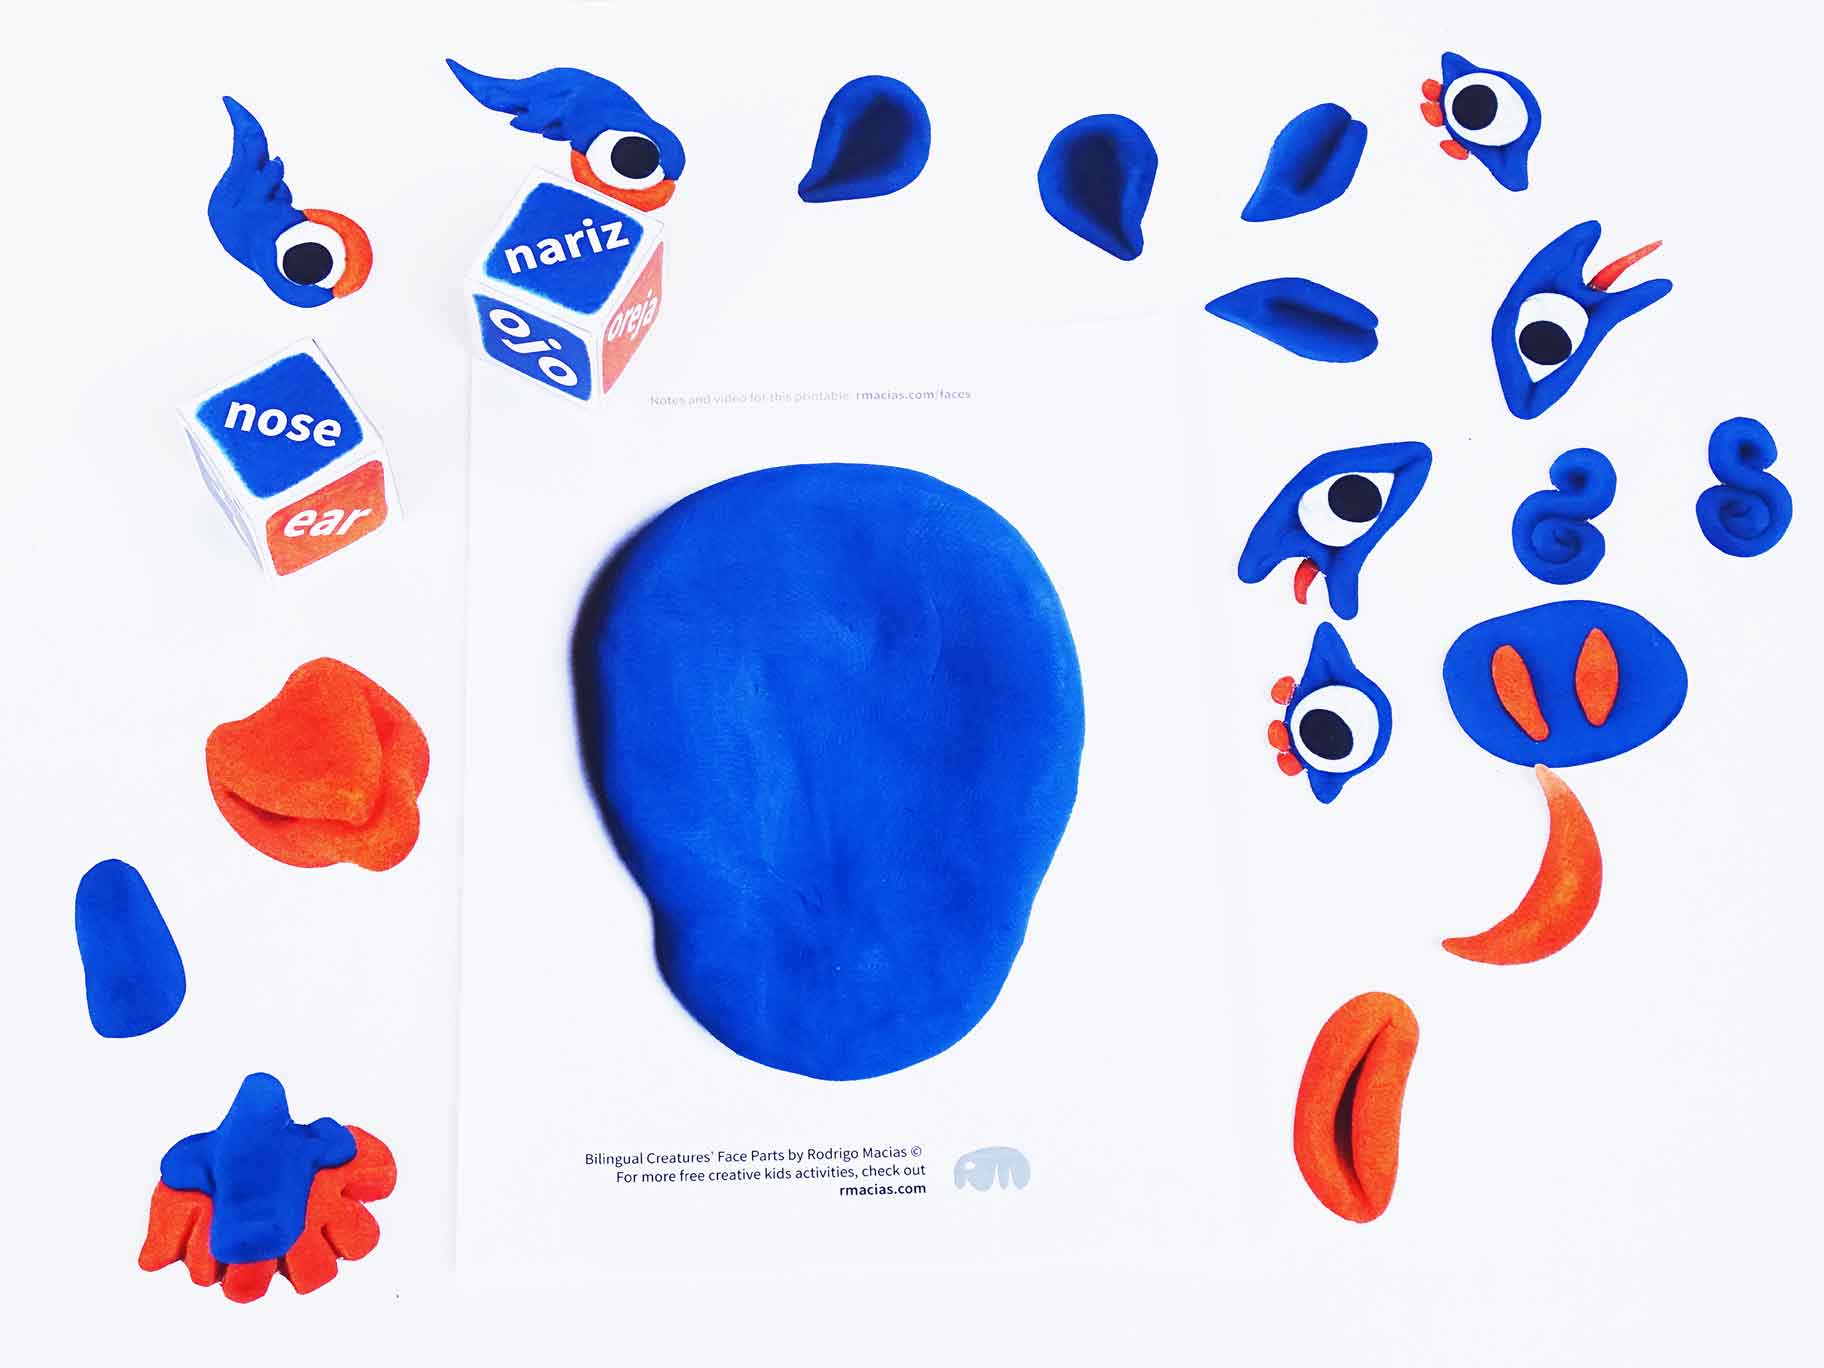 photograph regarding Printable Face Parts named Bilingual Creatures Confront Sections (Totally free Printable for English